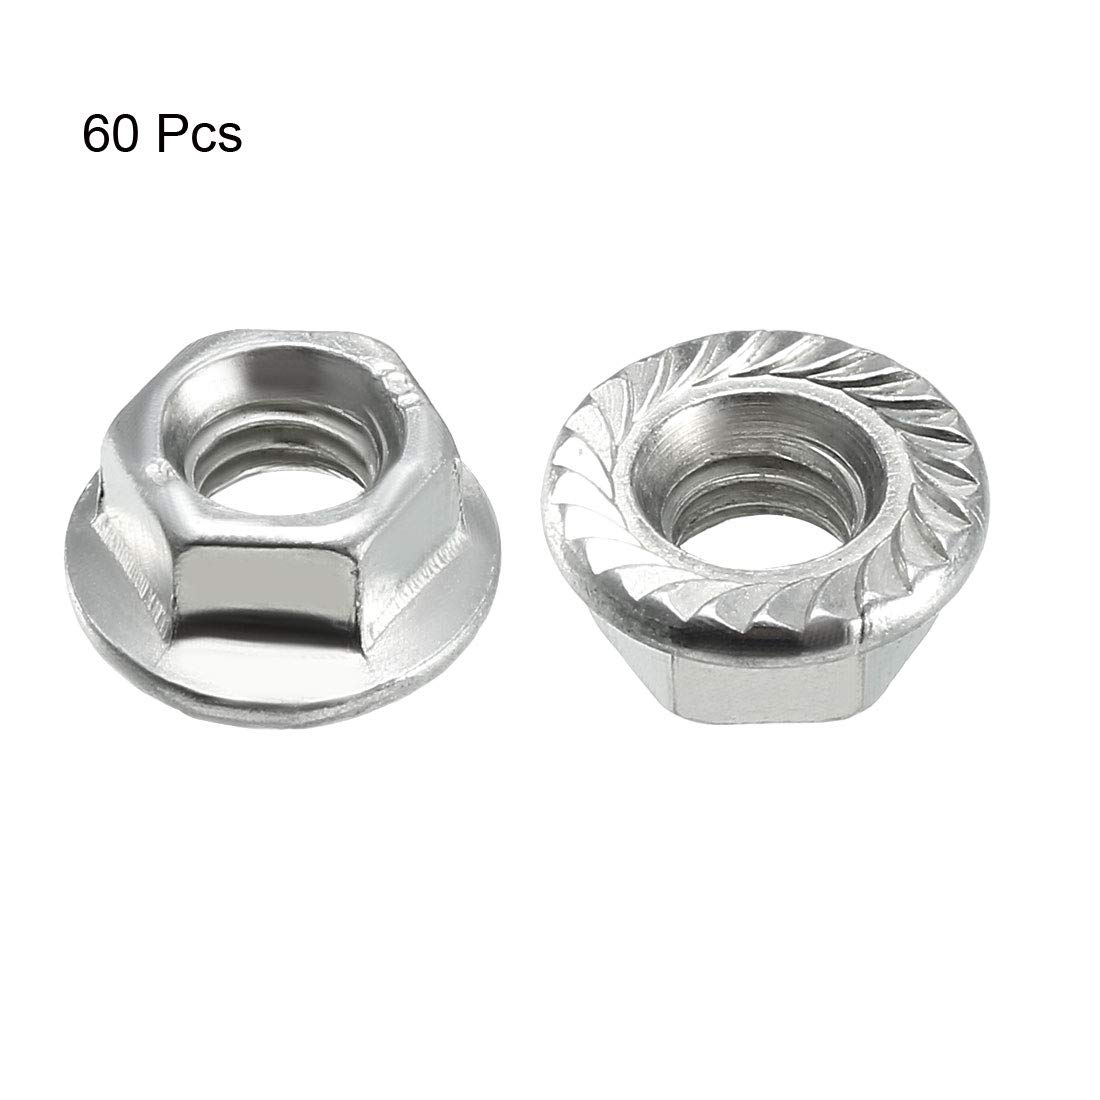 uxcell/® M8 Serrated Flange Hex Lock Nuts Carbon Steel 30 Pcs